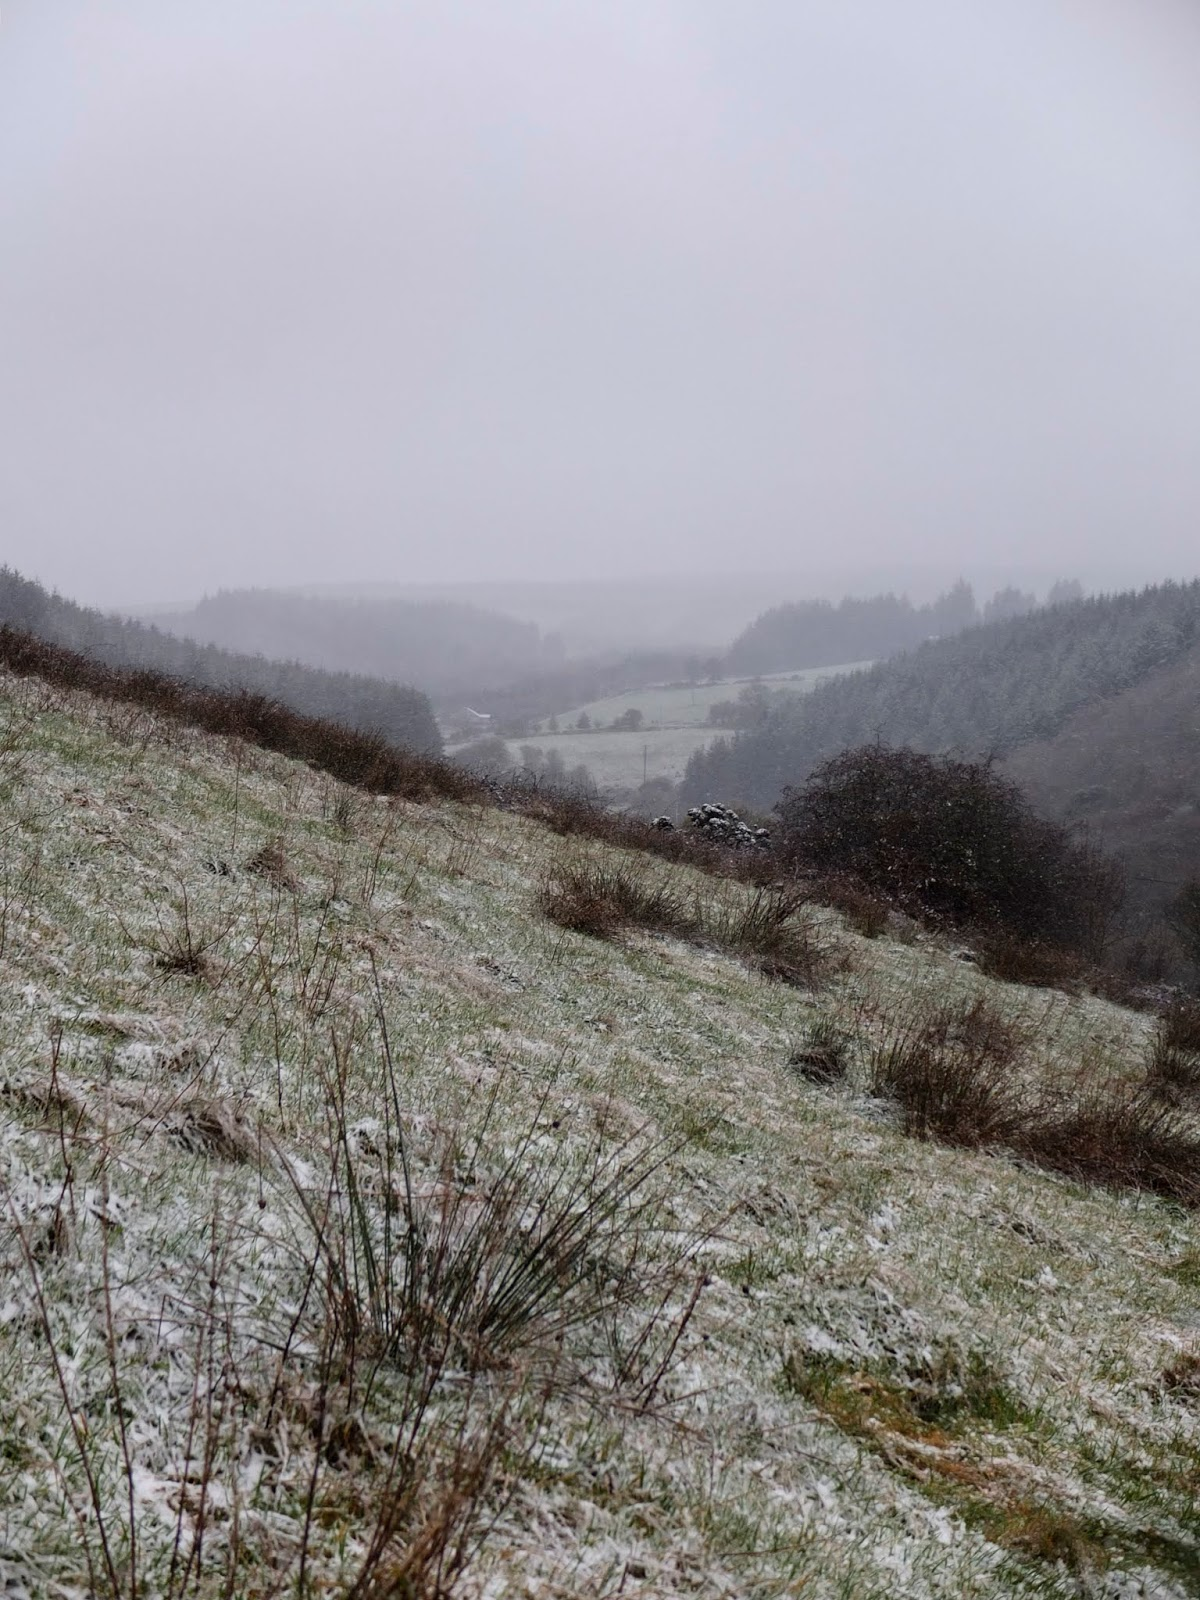 Snowy and foggy valley in the Boggeragh Mountains.